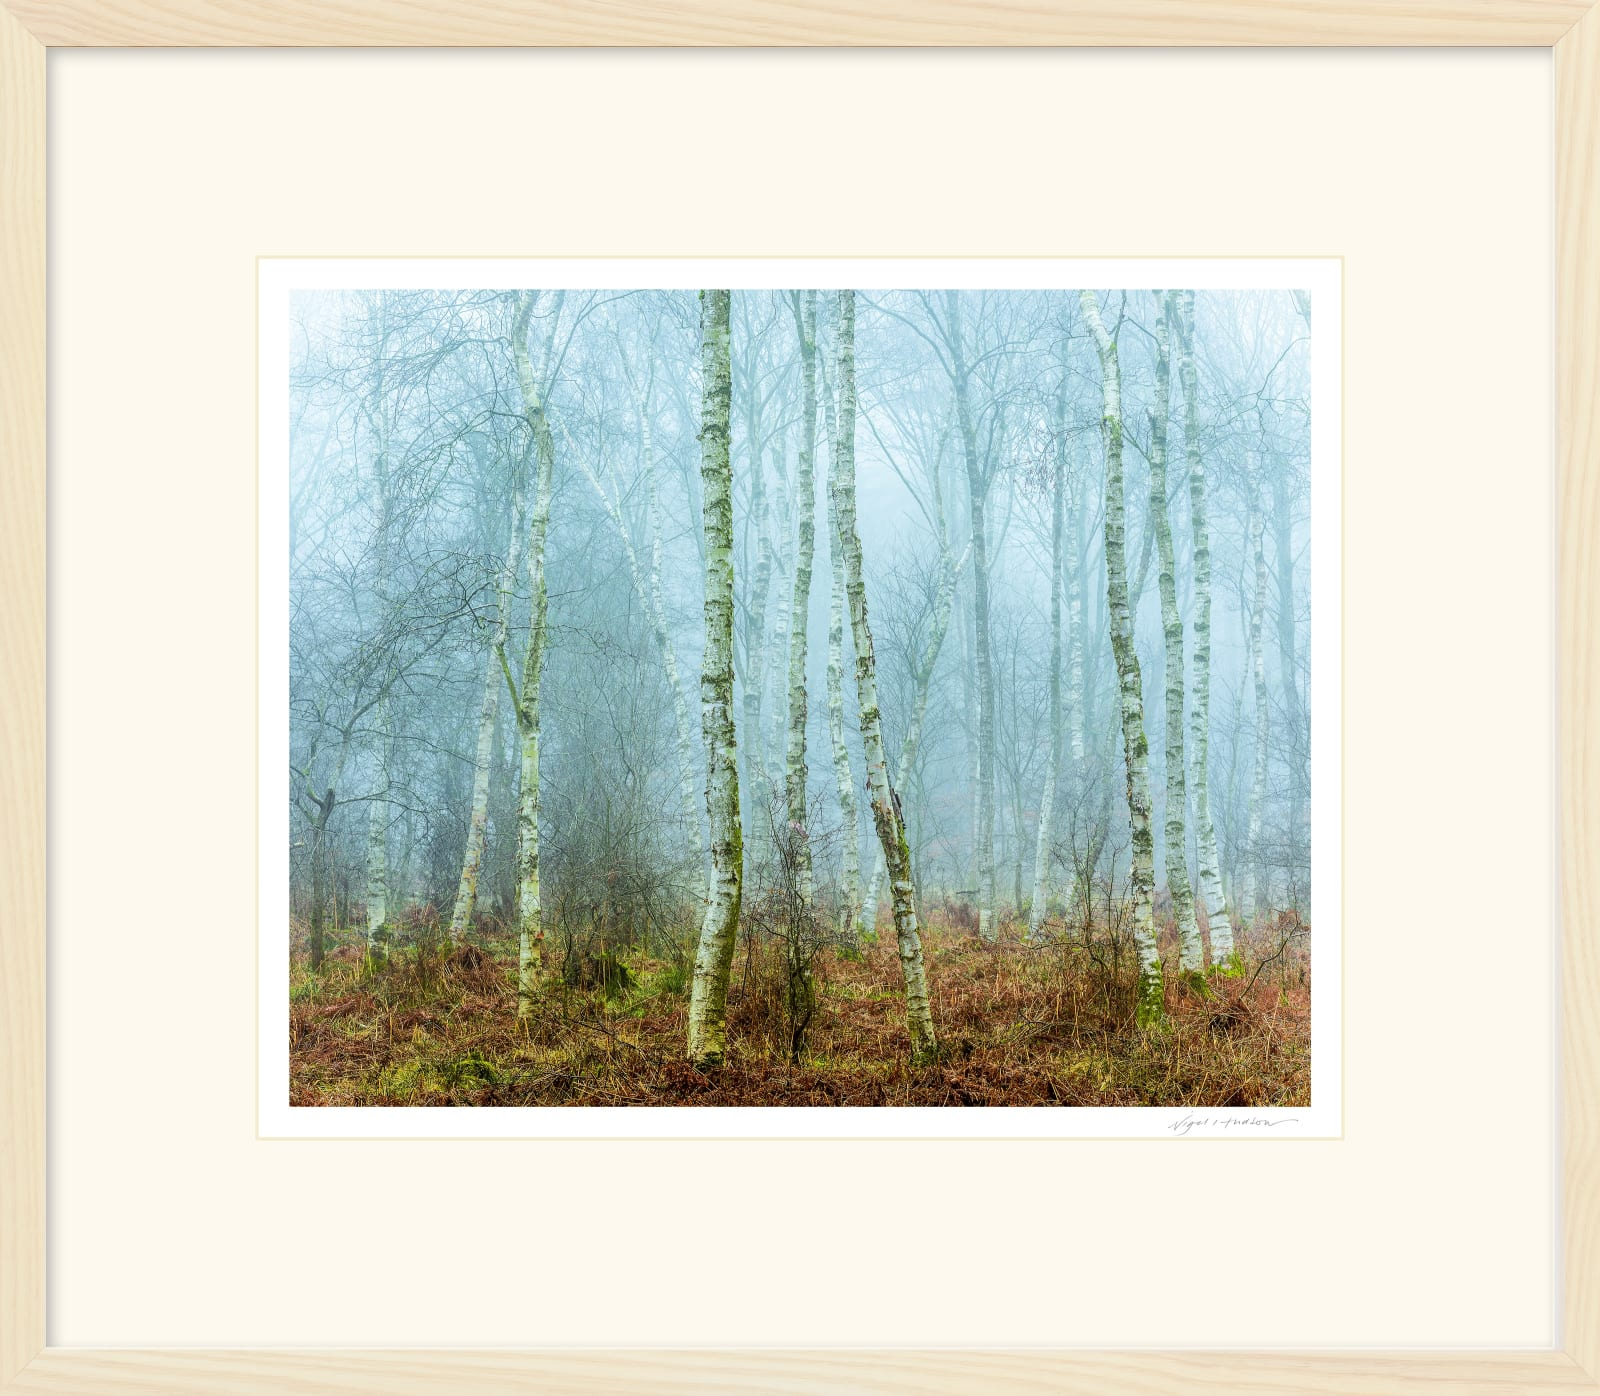 'THIN MEN IN THE MIST' 16 x 20 inch print within a 22 x 26 inch Frame Printed on Platinum Etching Fine Art Archival Paper Matted and framed in a 2 cm limed Ash Cushion Frame under water white glass Signed and Editioned with a Certificate of Authenticity Available in three sizes ... Ready to Hang Prices from £275.00 Price includes delivery by DPD Courier to your front door